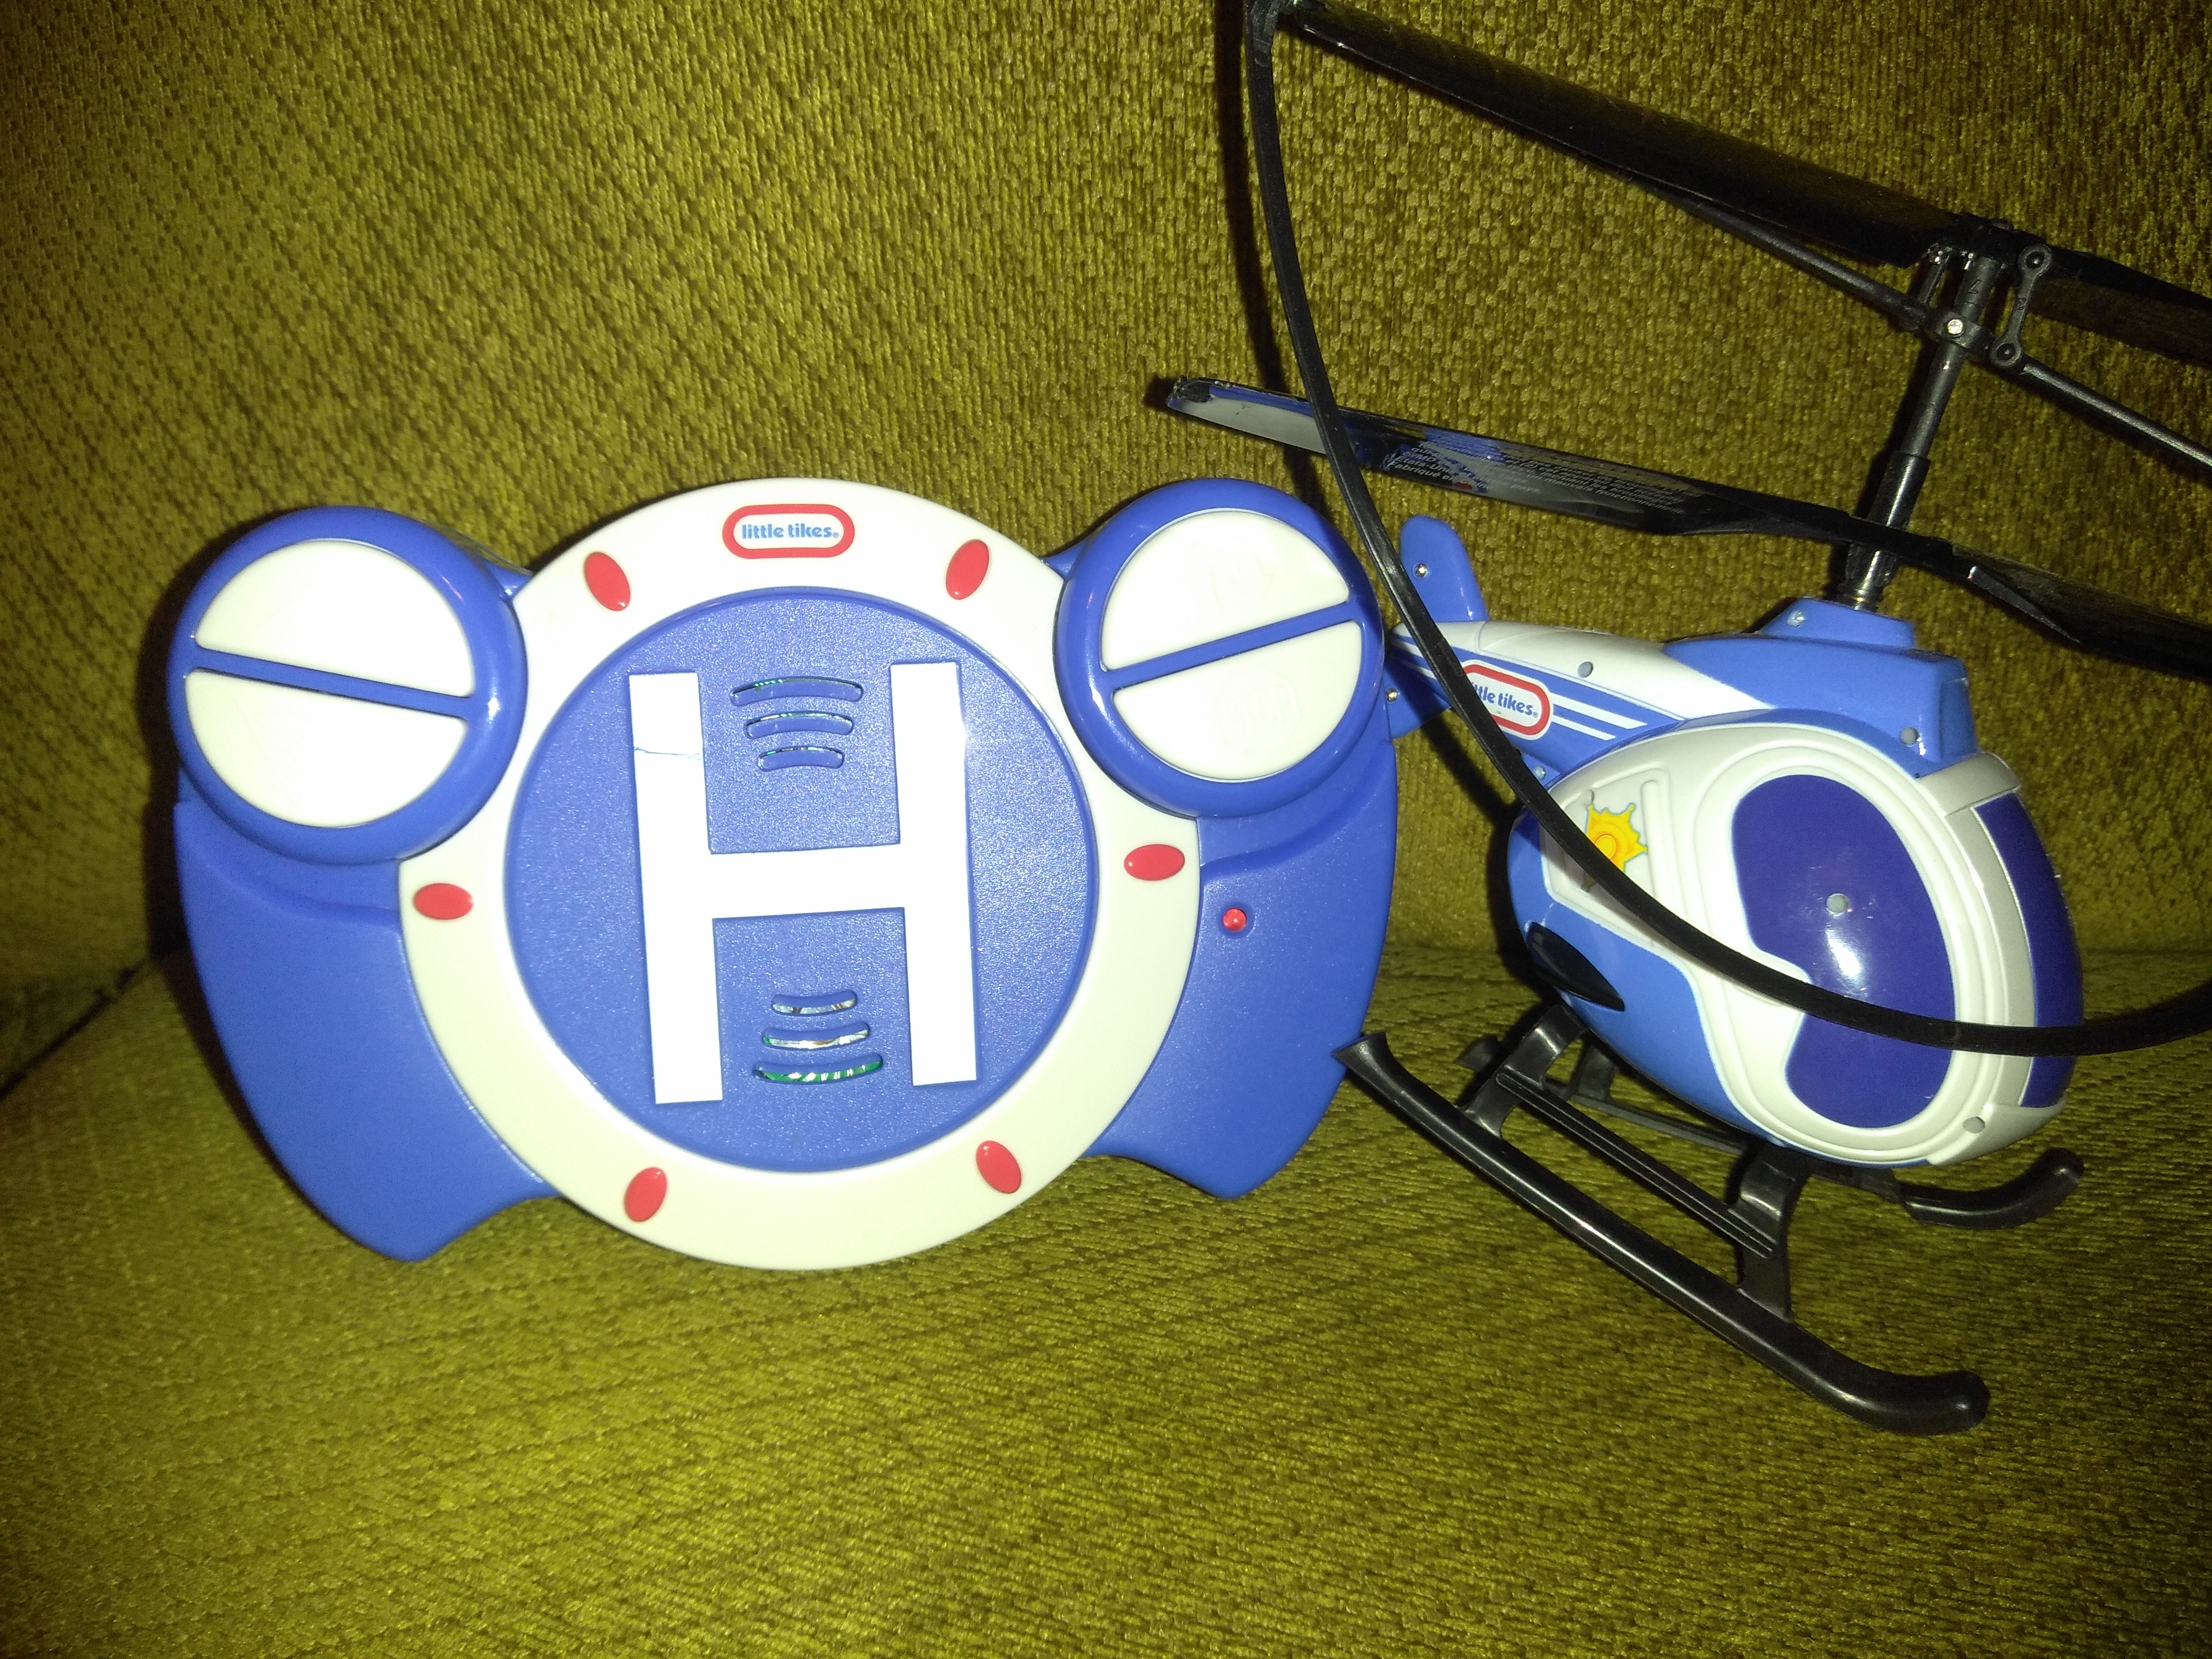 Little tikes remote control helicopter